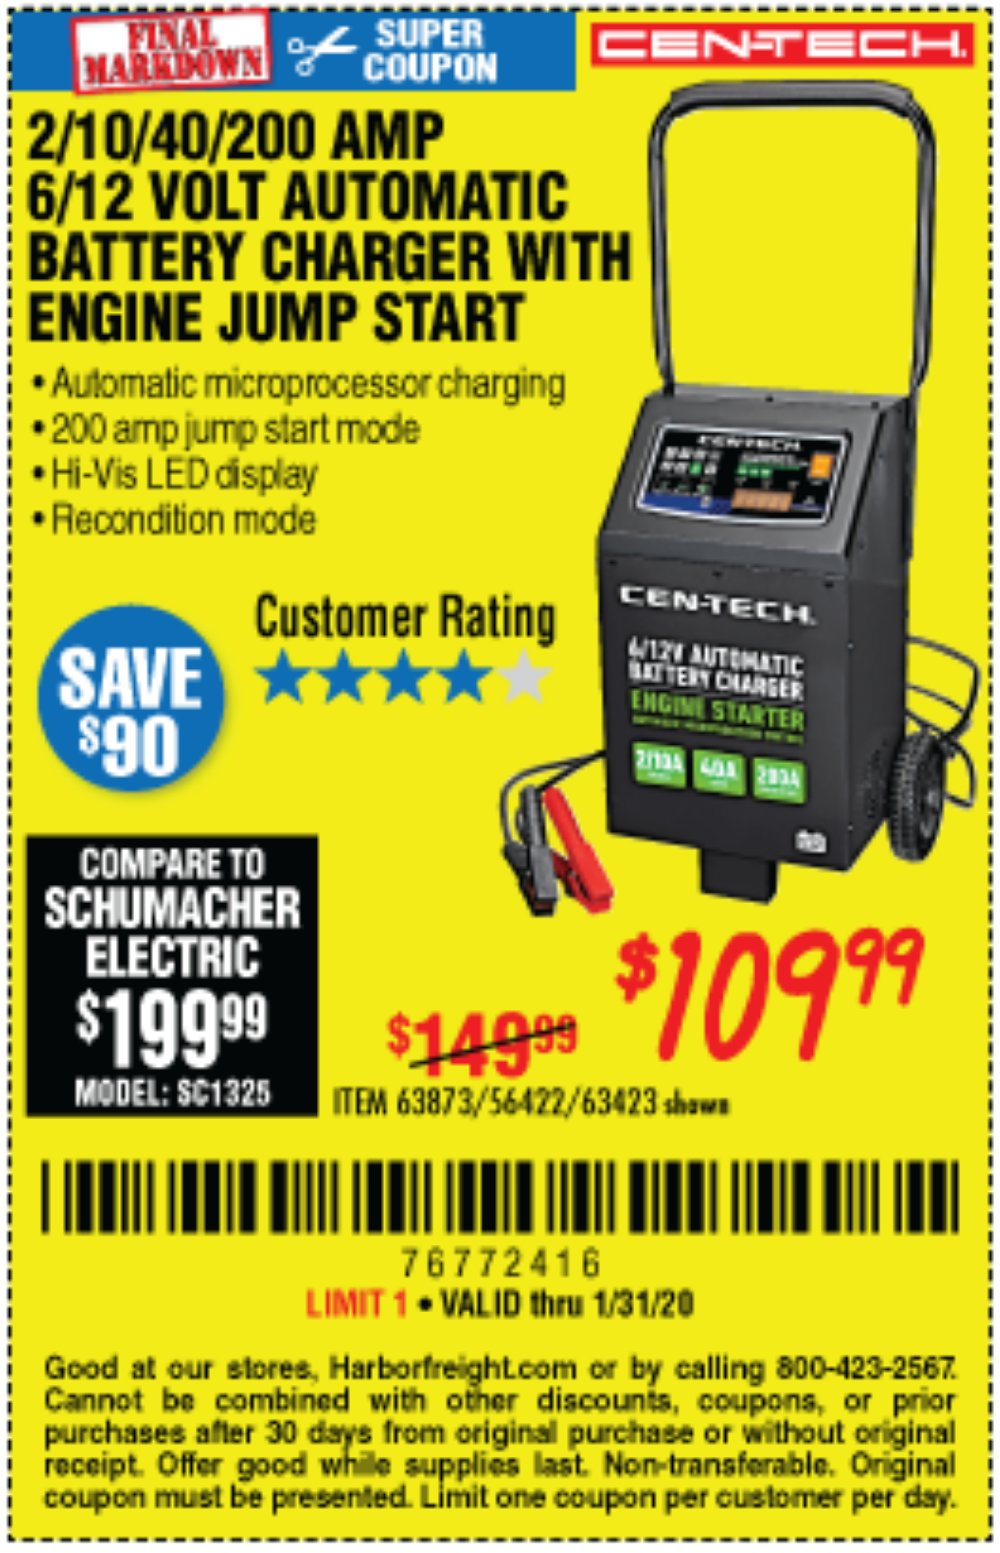 Harbor Freight Coupon, HF Coupons - Cen-tech 2/10/40/200 Amp 6/12 Volt Automatic Battery Charger With Engine Jump Start